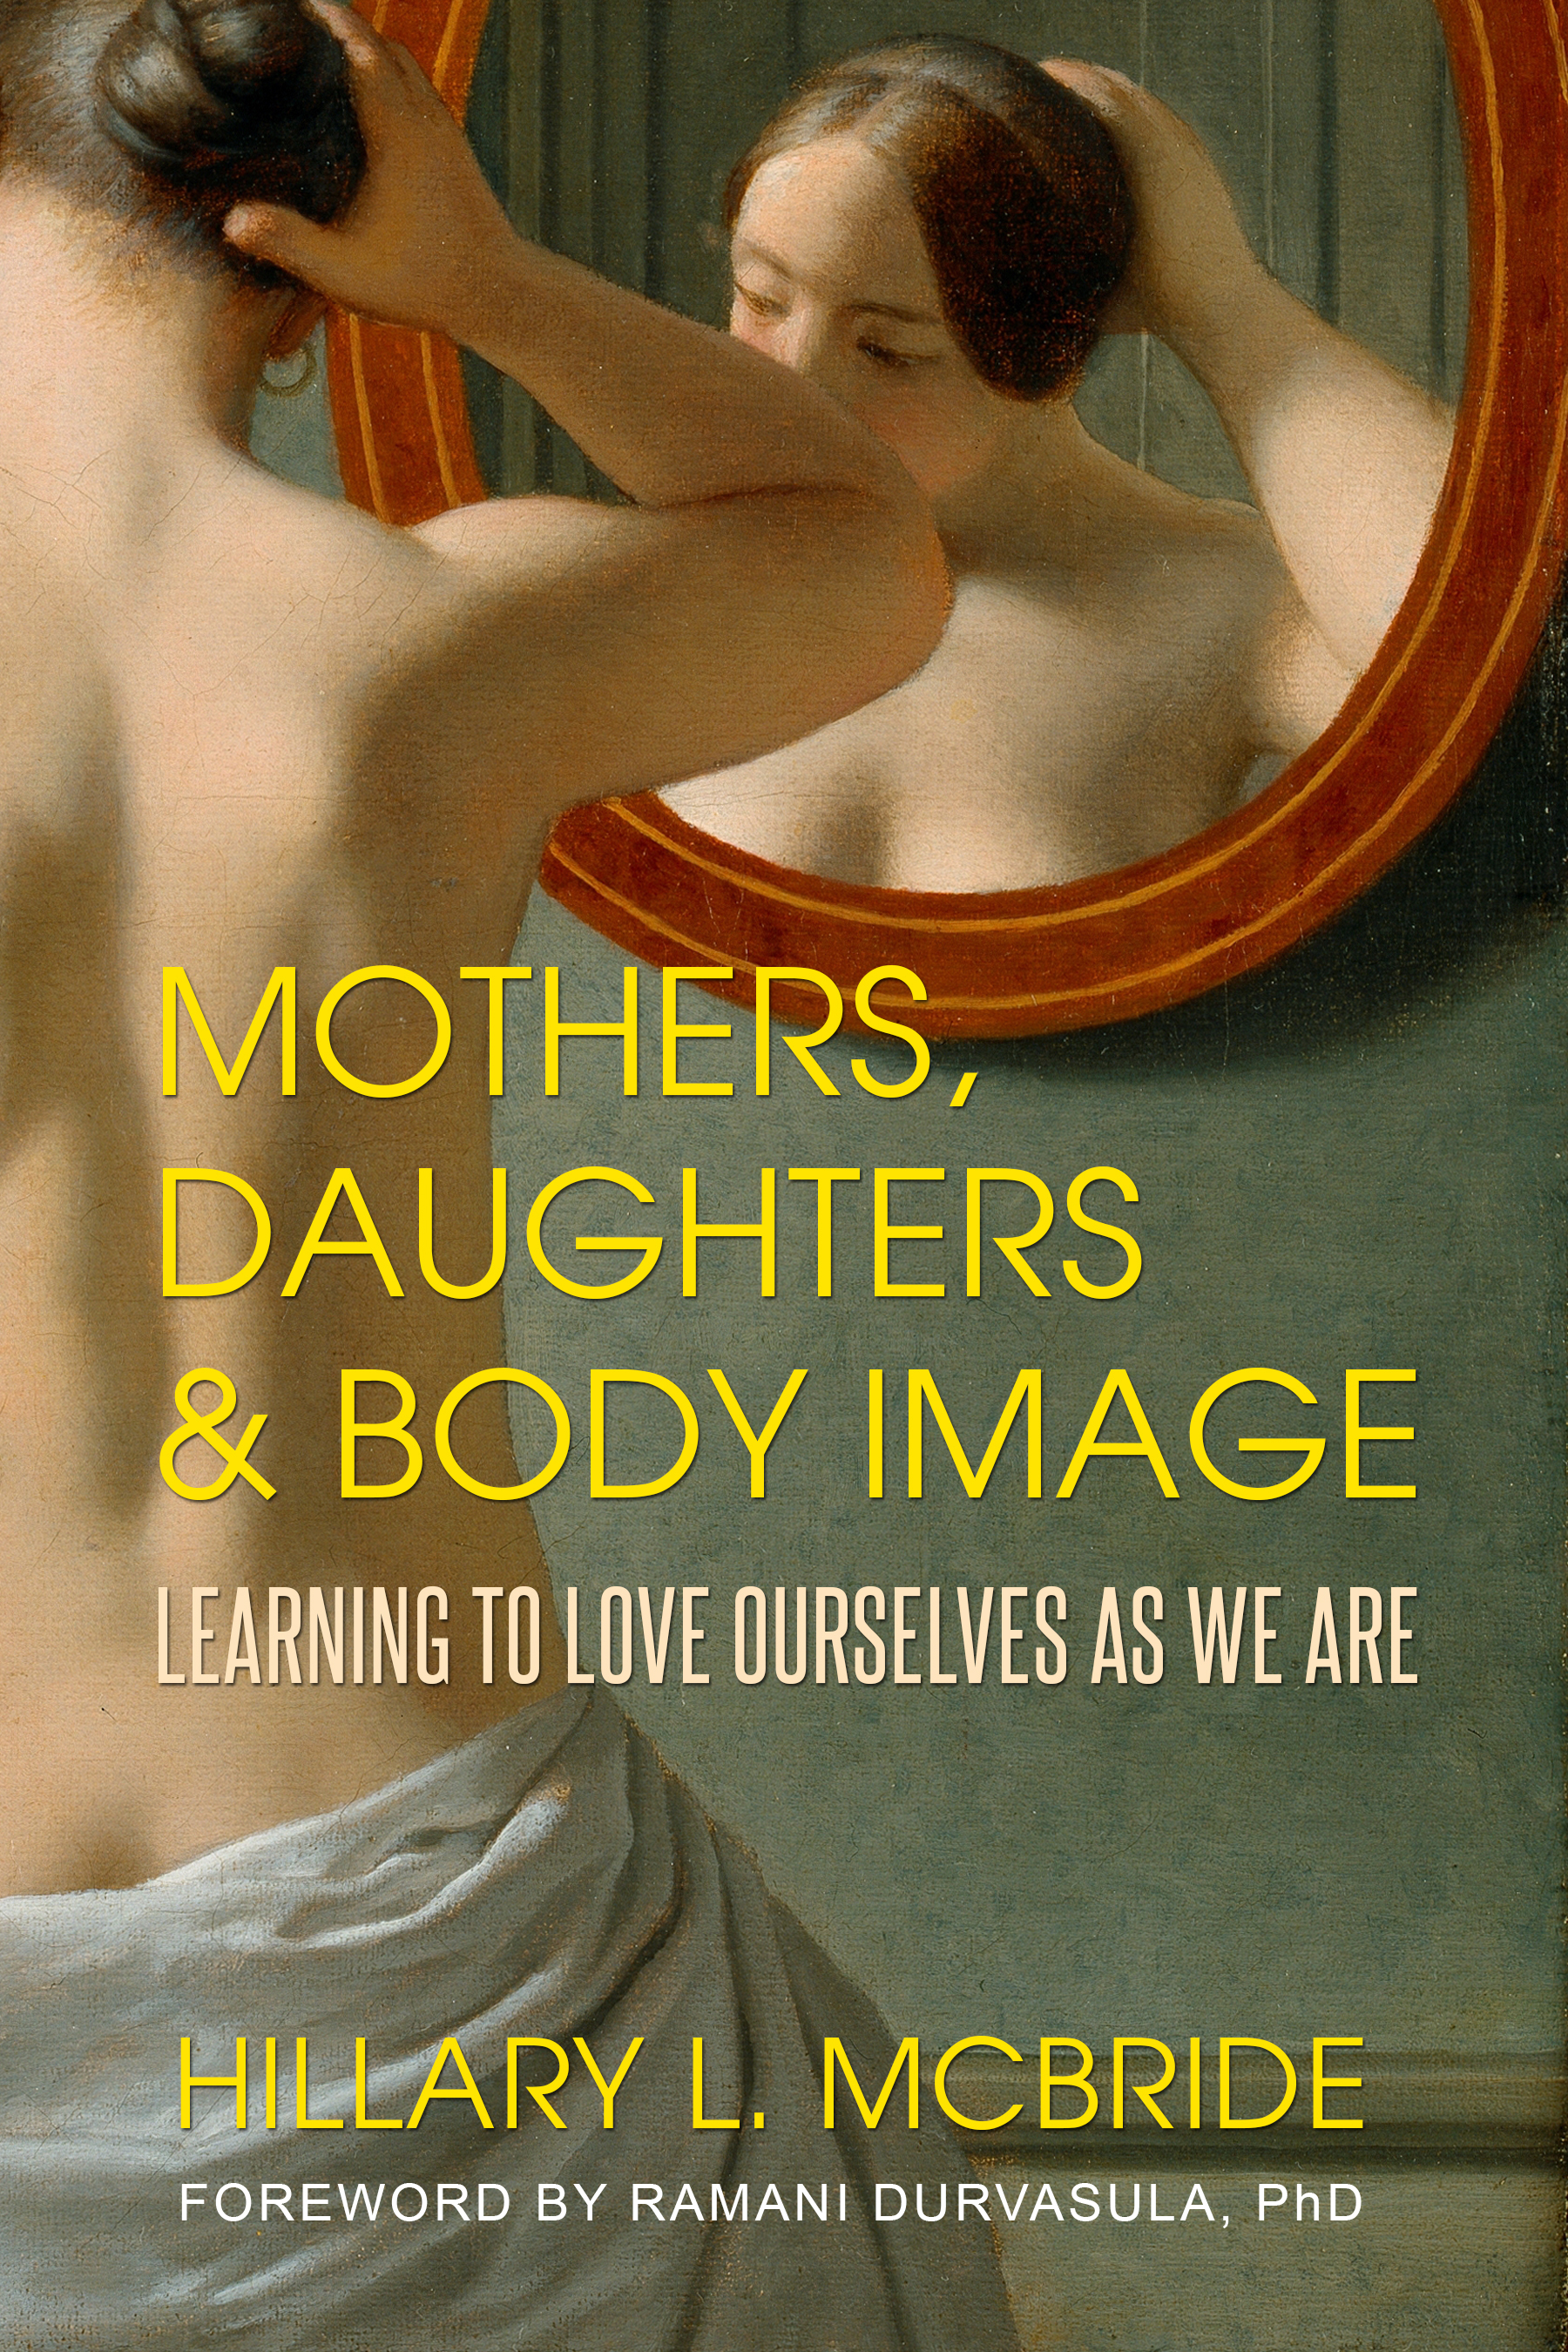 Mothers, Daughters, and Body Image Learning to Love Ourselves as We Are